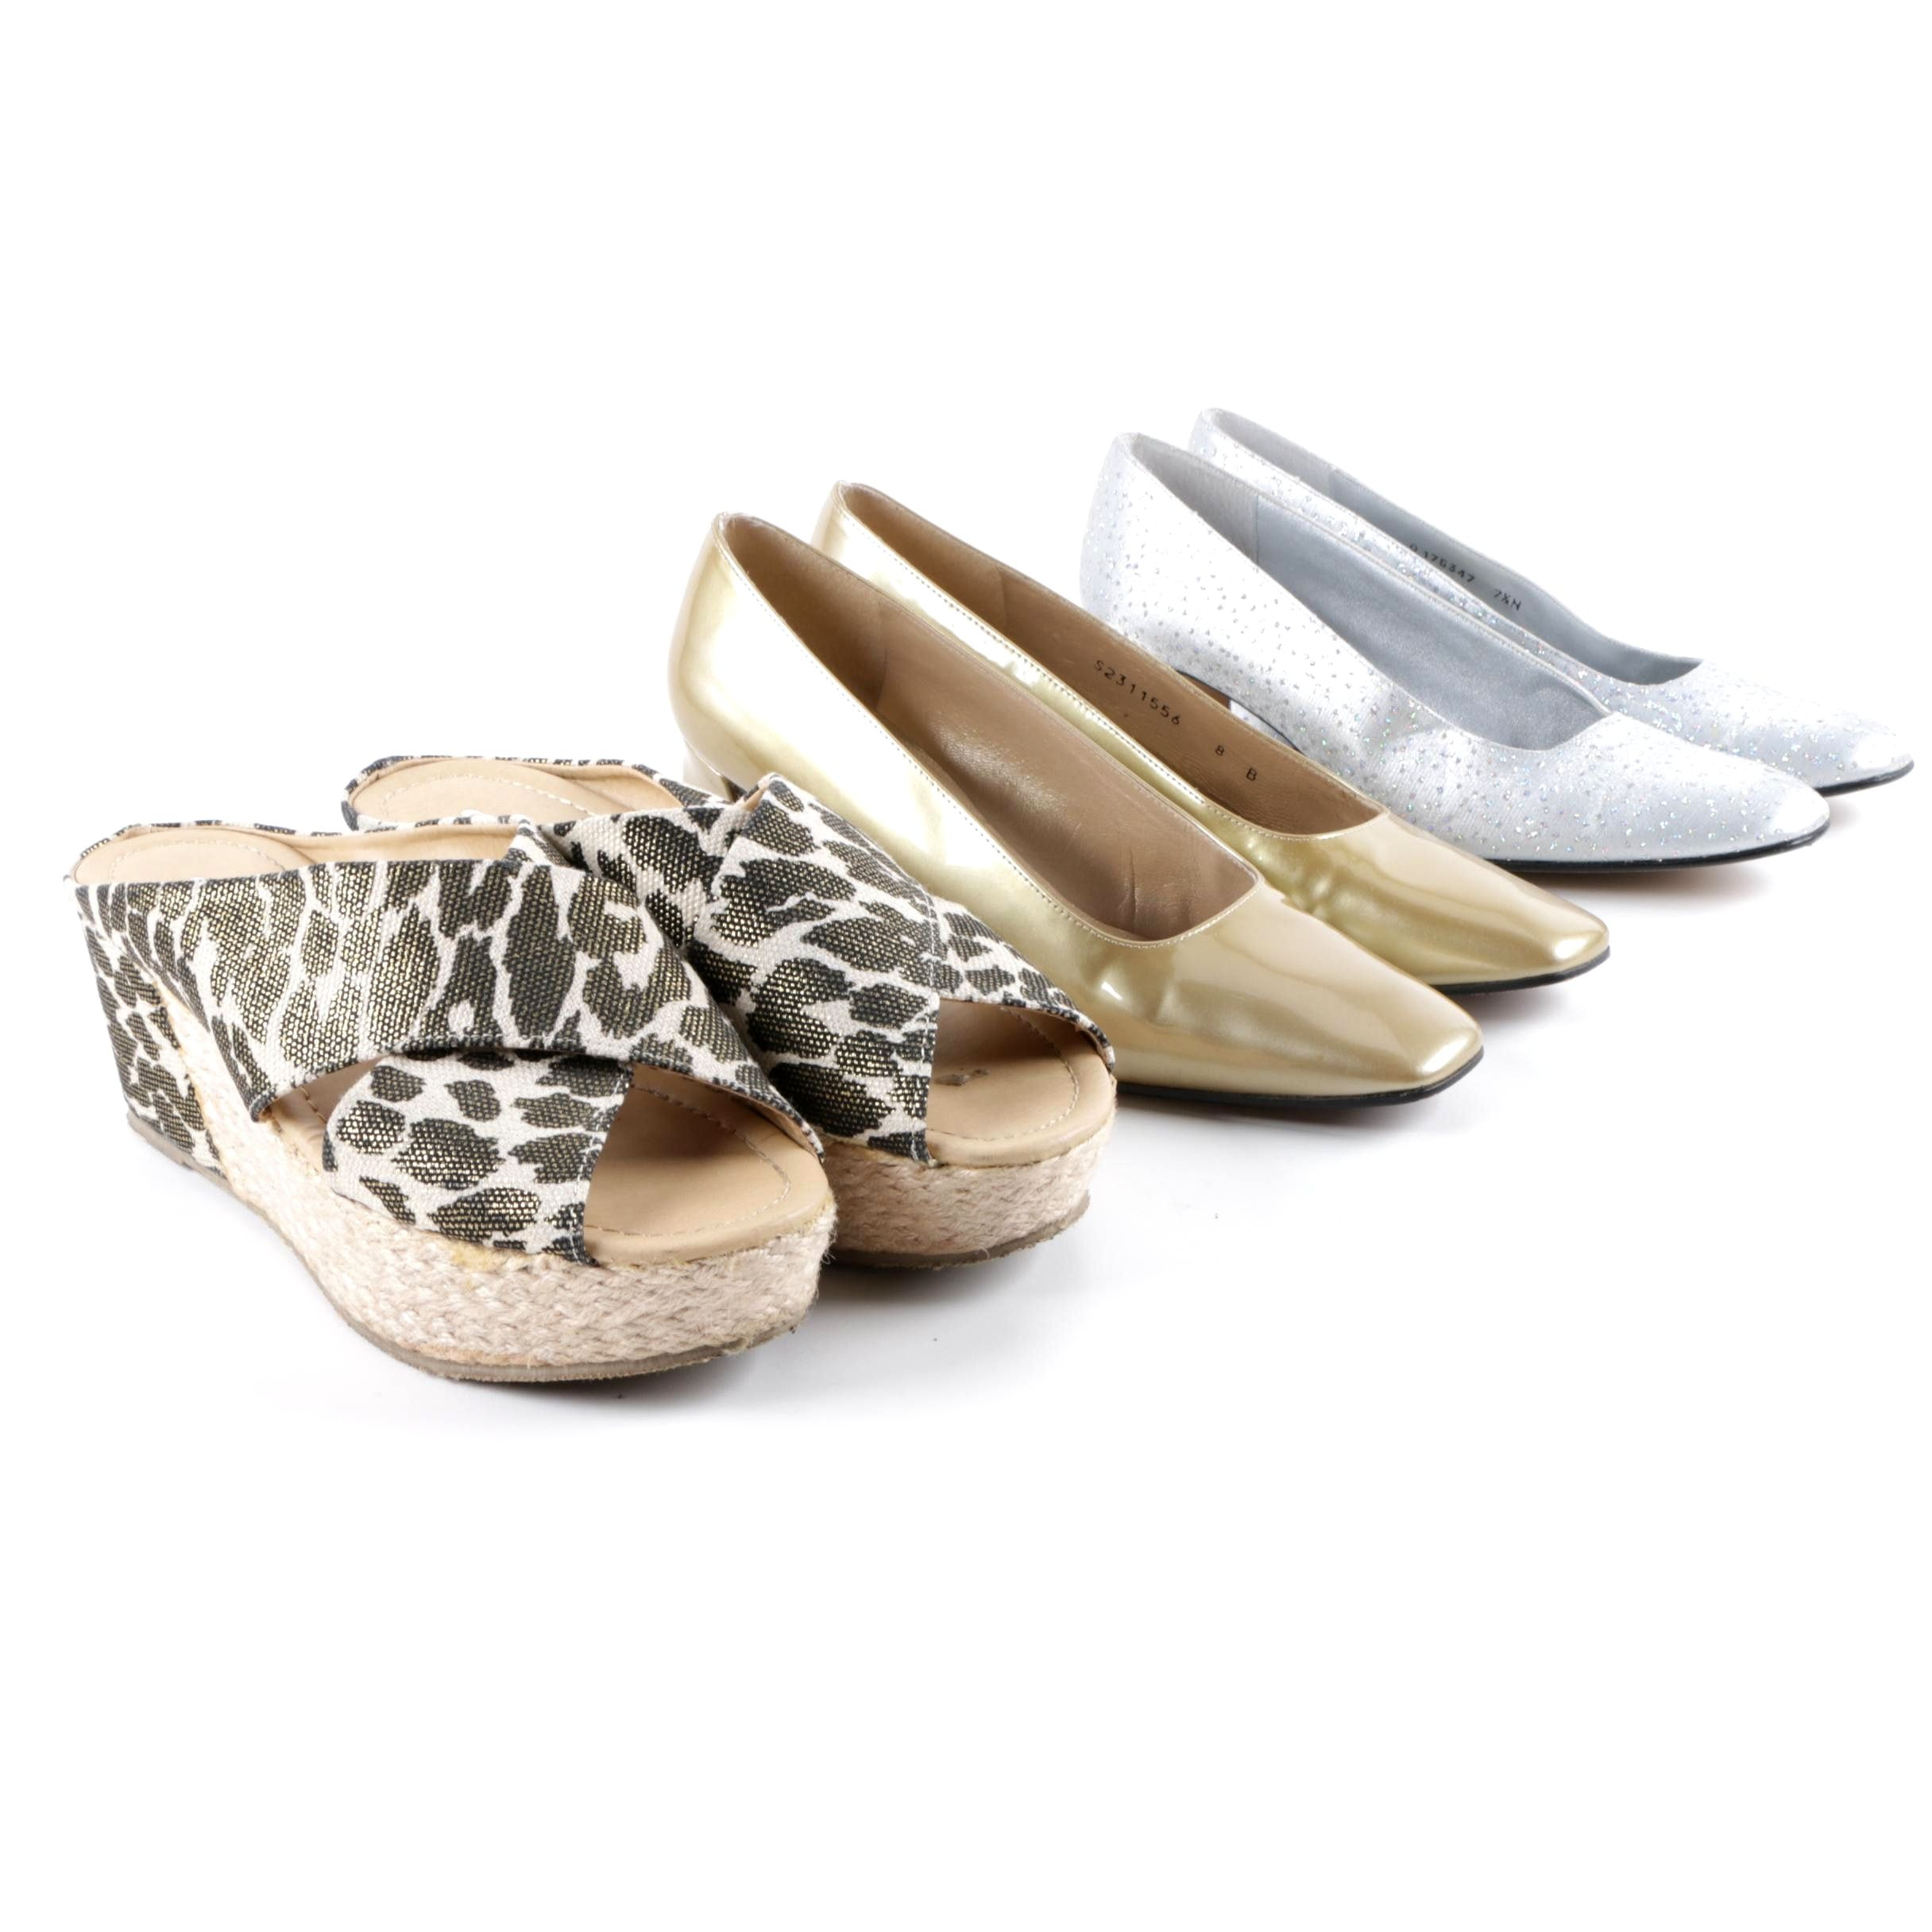 Women's Pumps and Espadrilles Including Stuart Weitzman and Chinese Laundry